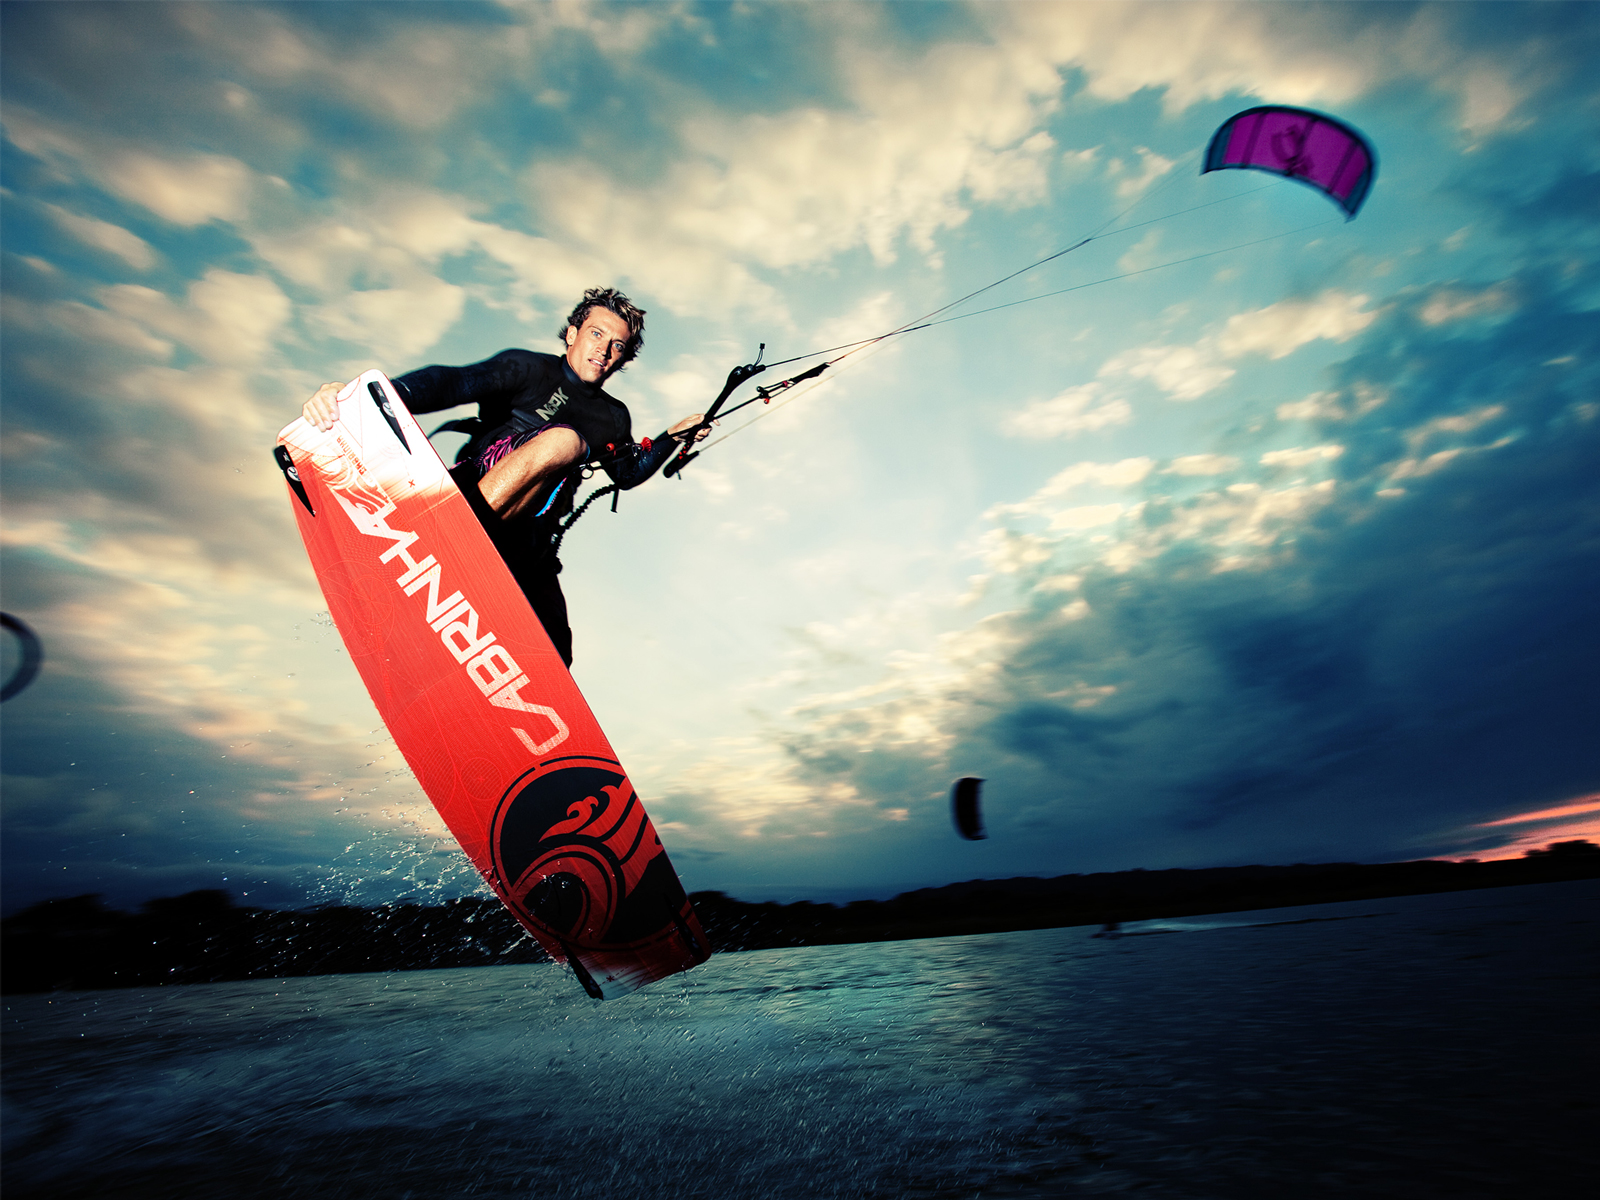 kitesurf wallpaper image - Damien LeRoy with a tailgrab at dusk on his Cabrinha kites gear - in resolution: Standard 4:3 1600 X 1200